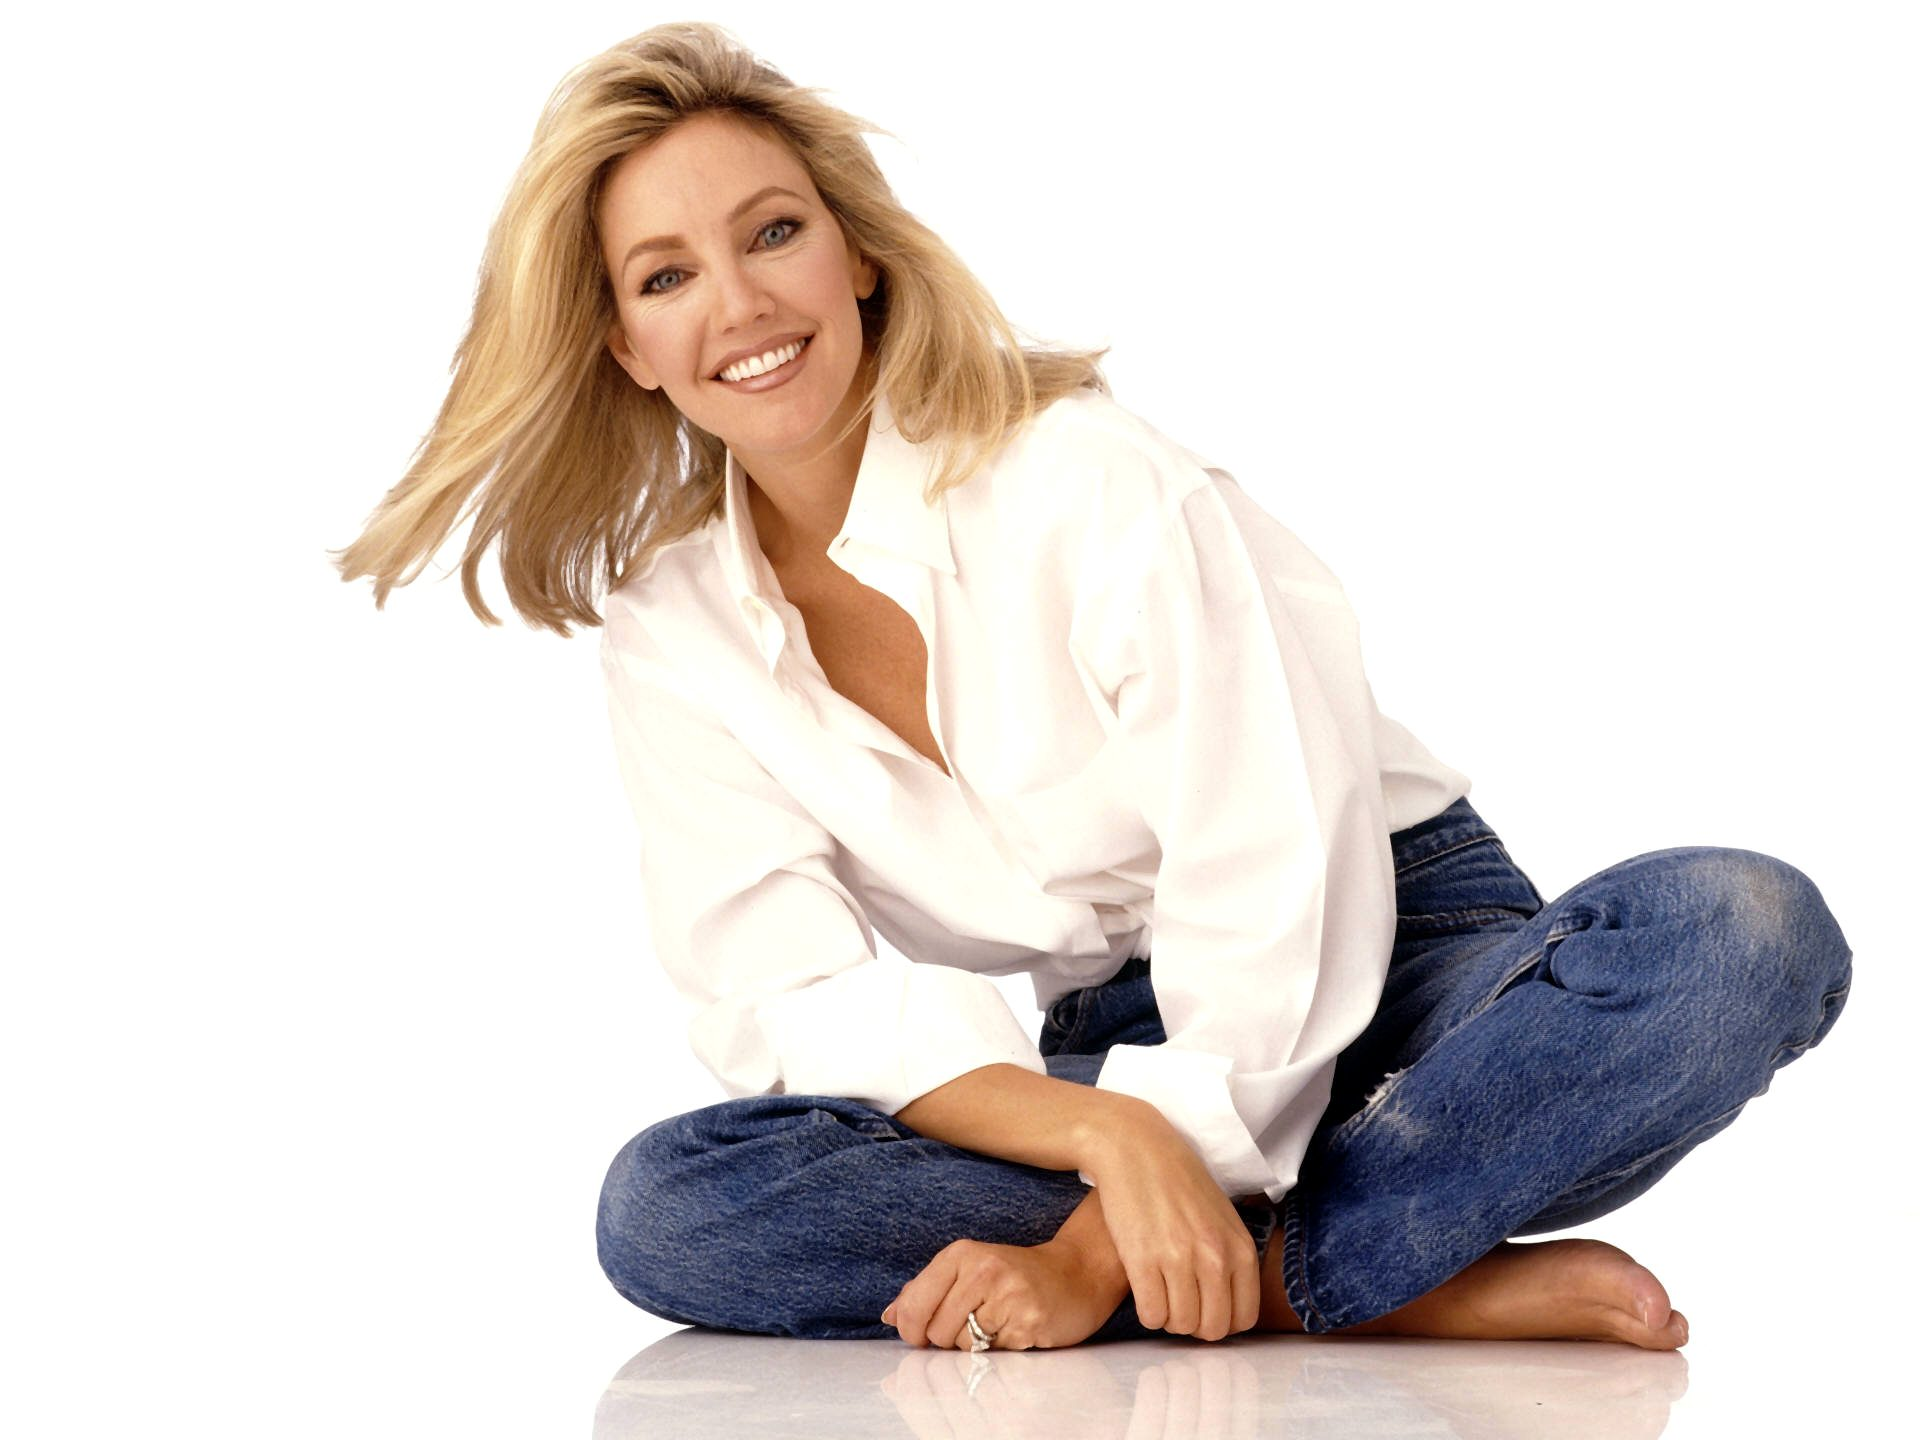 1920x1440 - Heather Locklear Wallpapers 8